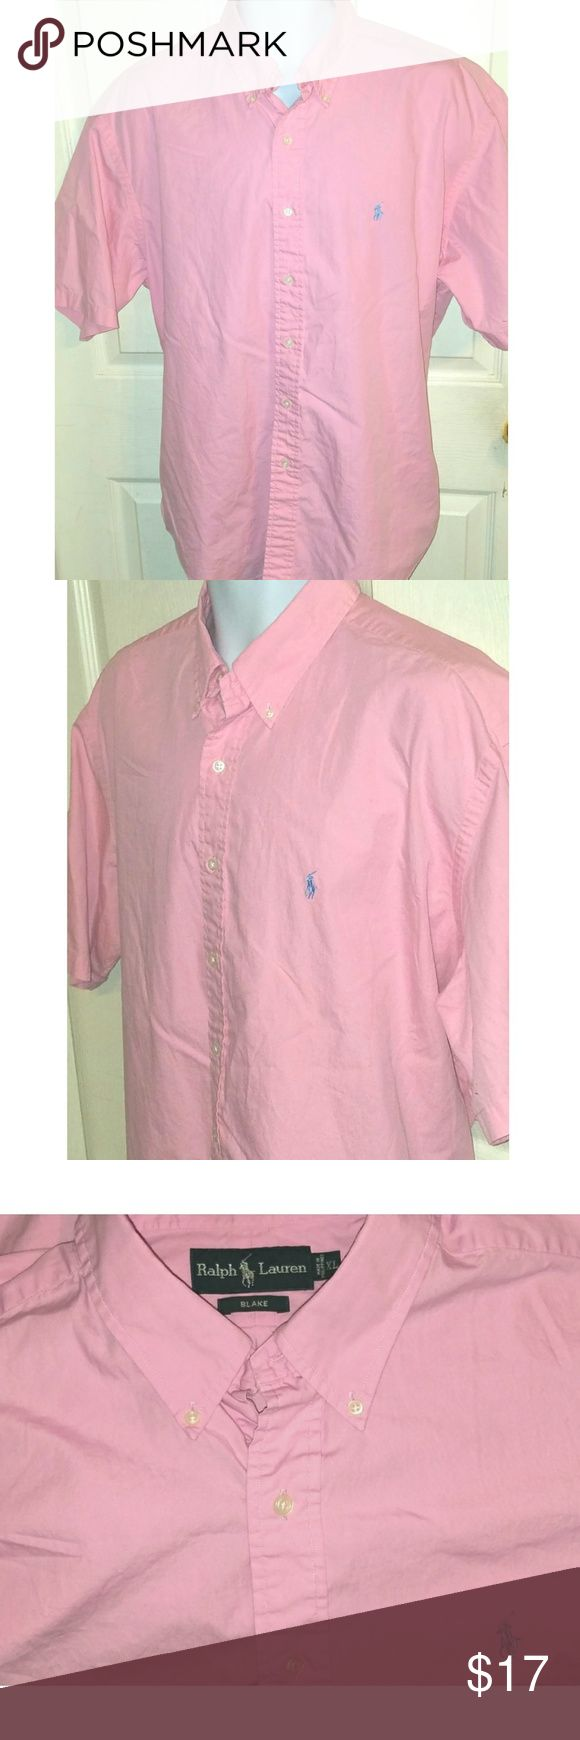 Polo Ralph Lauren Short Sleeve Pink Mens Shirt XL Thia is a mens XL short sleeve pink shirt by Polo Ralph Lauren. The chest measures 28 inches and the length is 34 inches. Polo by Ralph Lauren Shirts Casual Button Down Shirts